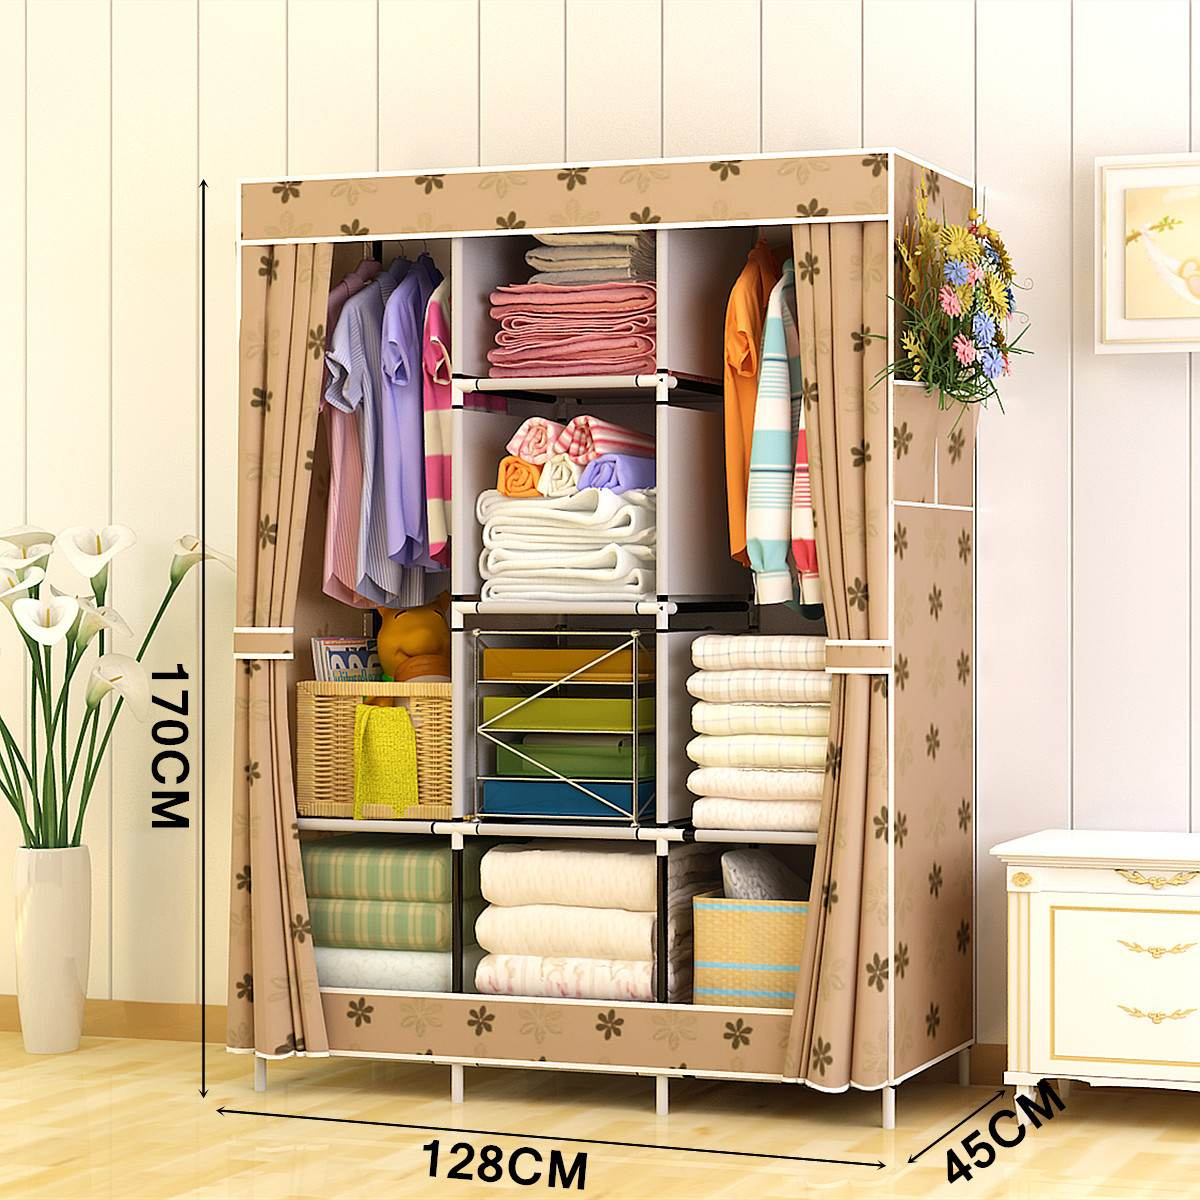 128x45x170cm Non-woven Fabric Wardrobe Fabric Closet Portable Folding Dustproof Waterproof Wardrobes Clothing Cabinet Furniture